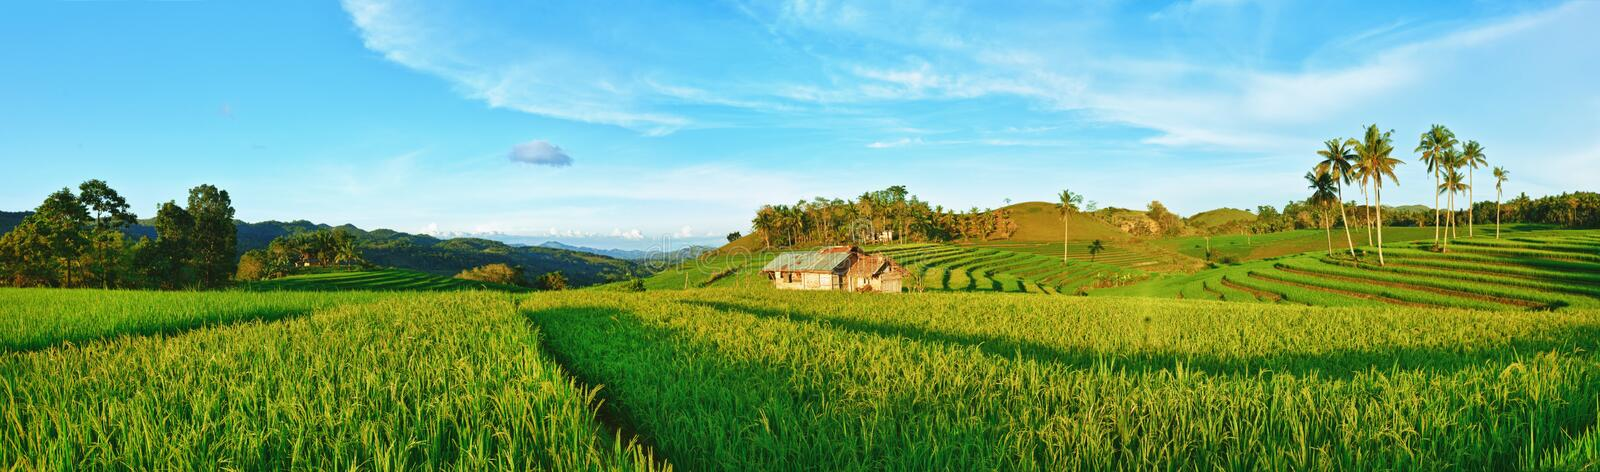 Download Paddy rice panorama stock image. Image of agriculture - 18778575